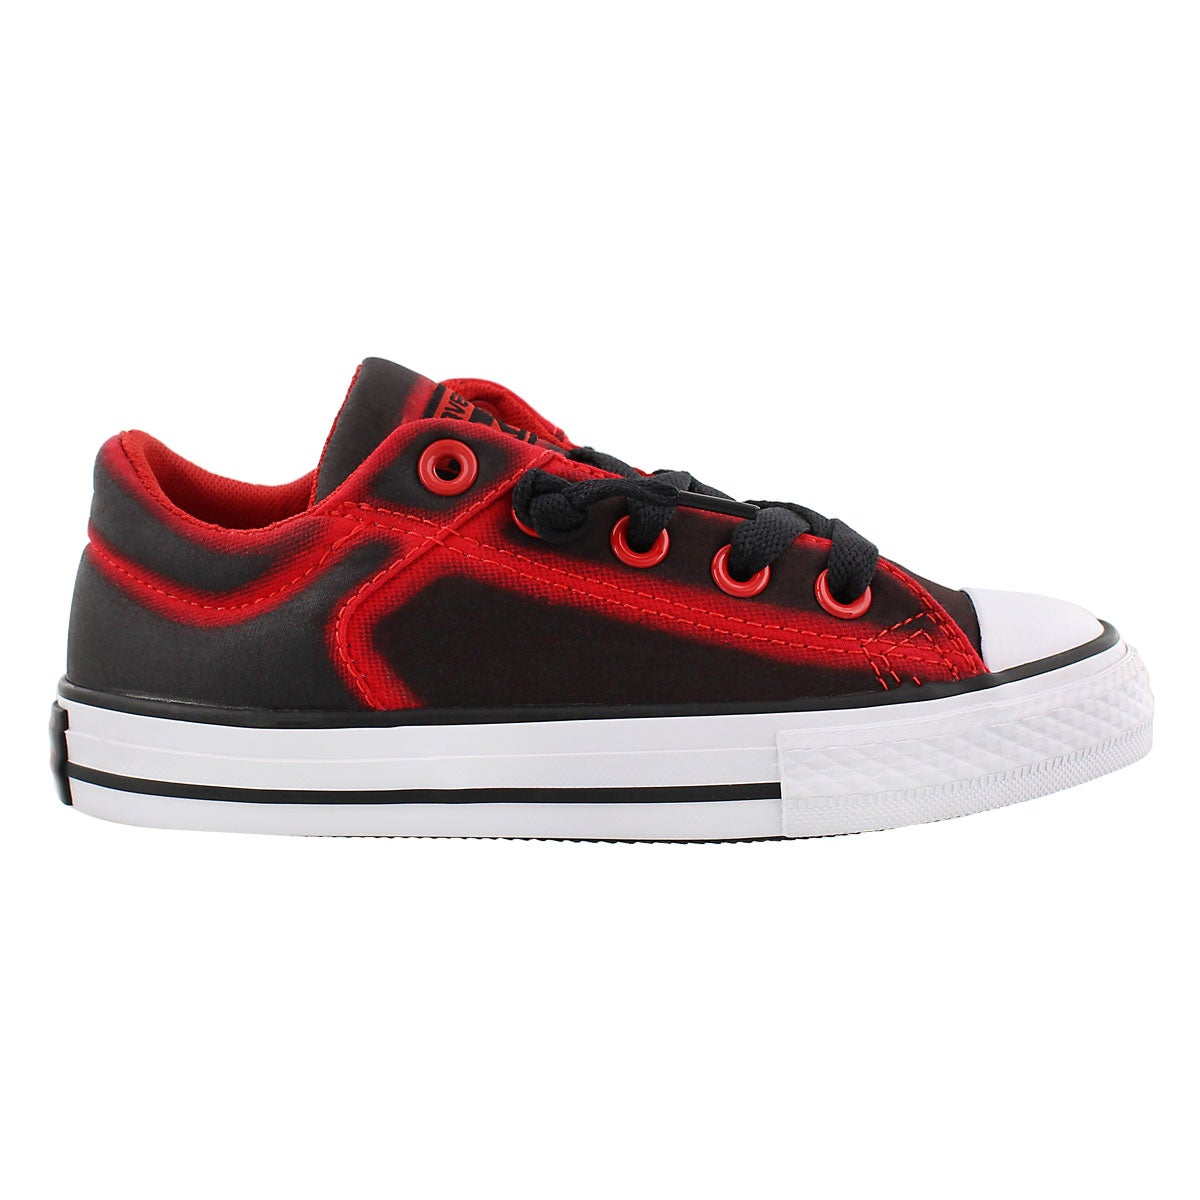 Bys HighStreetFlashlight blk/red snkr